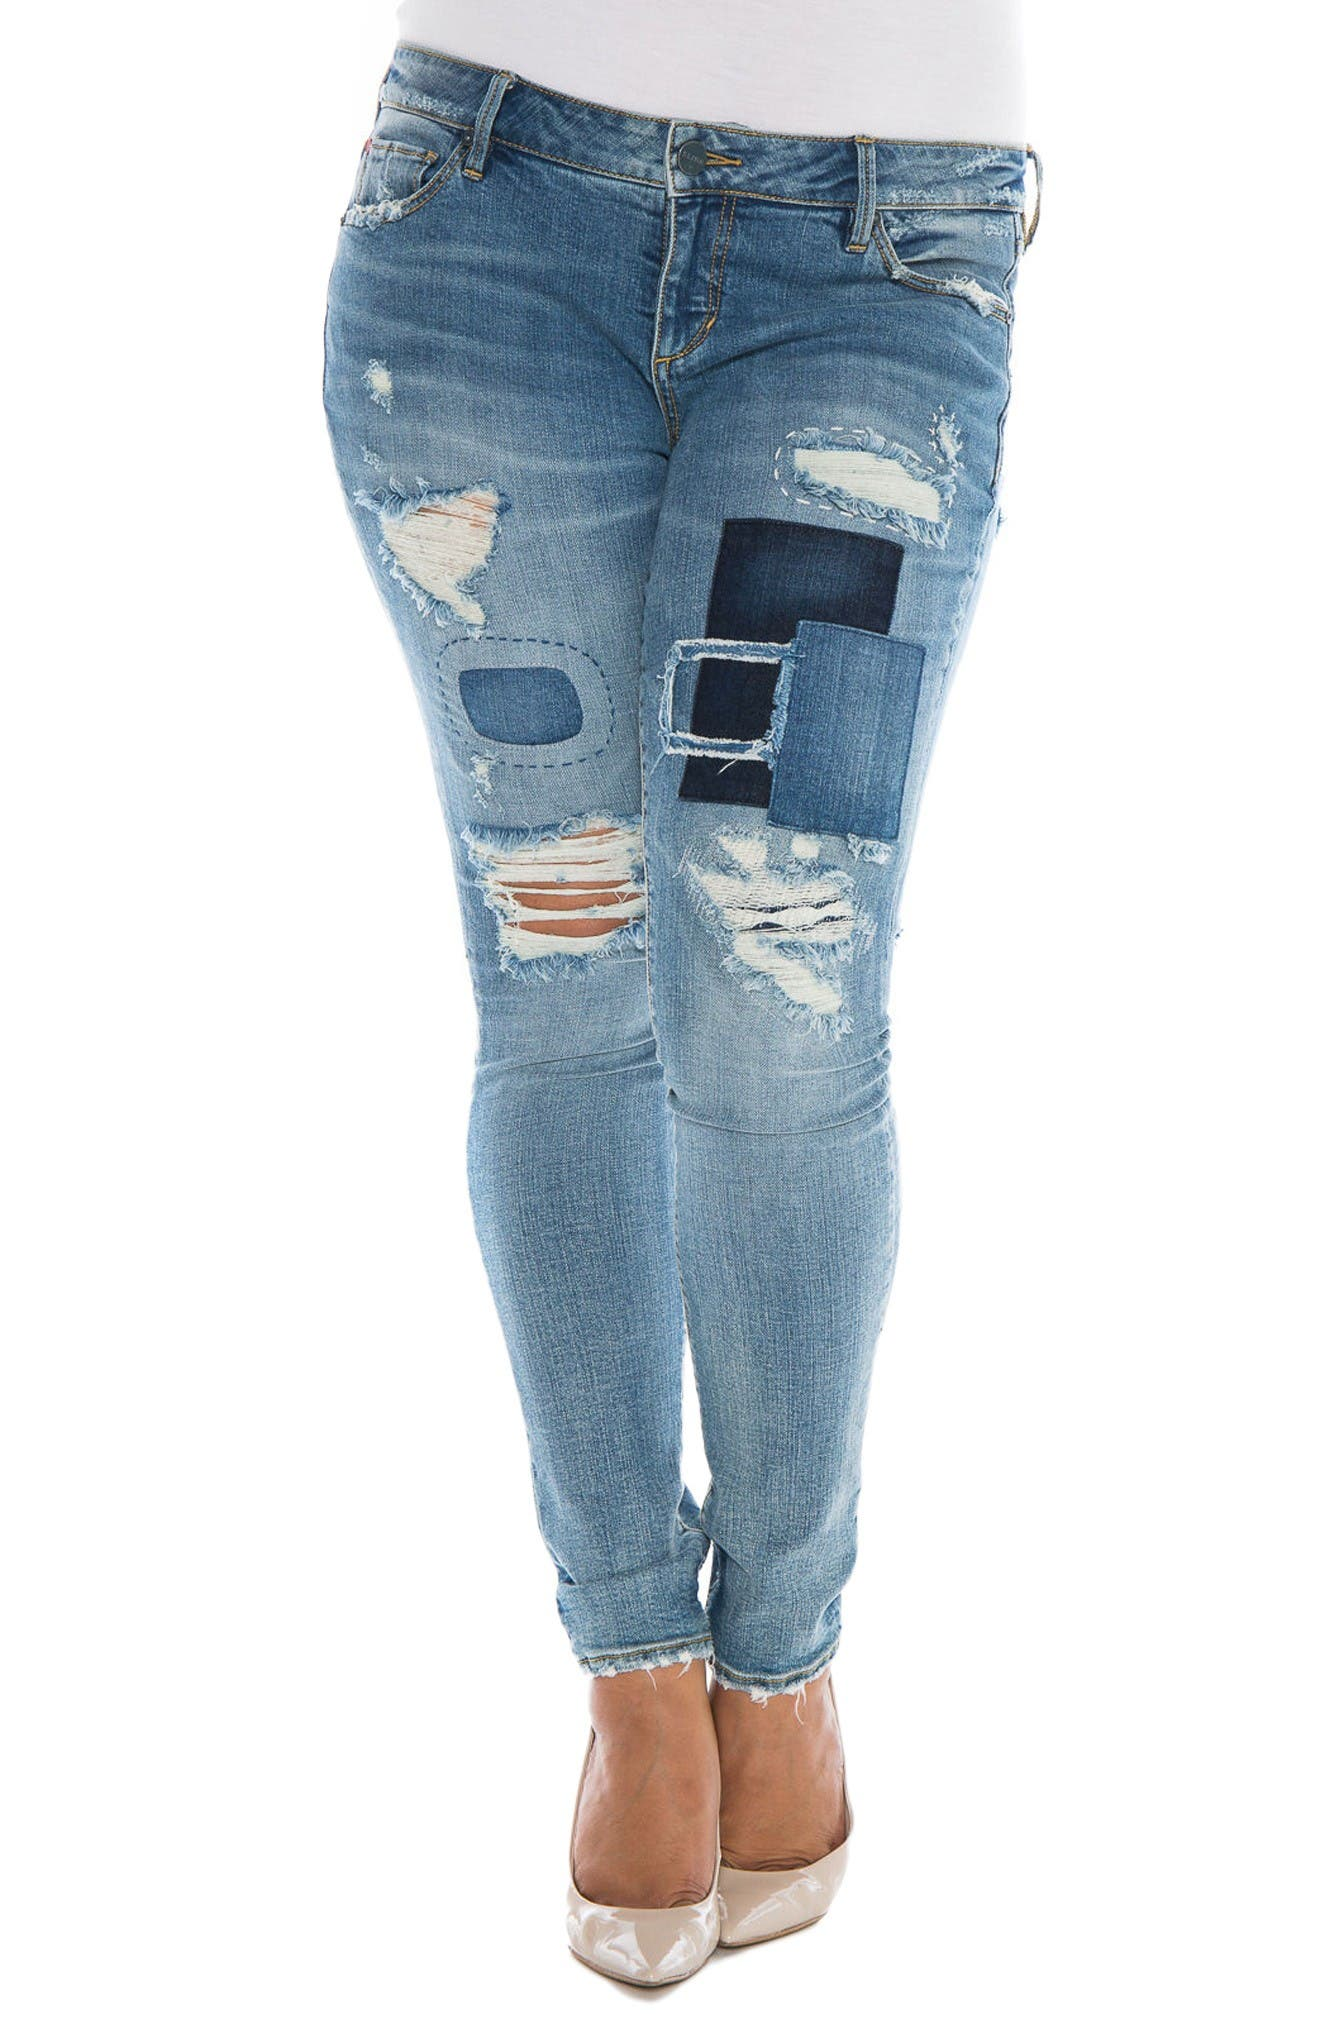 Alternate Image 1 Selected - SLINK Jeans Destroyed & Patched Skinny Jeans (Hannah) (Plus Size)